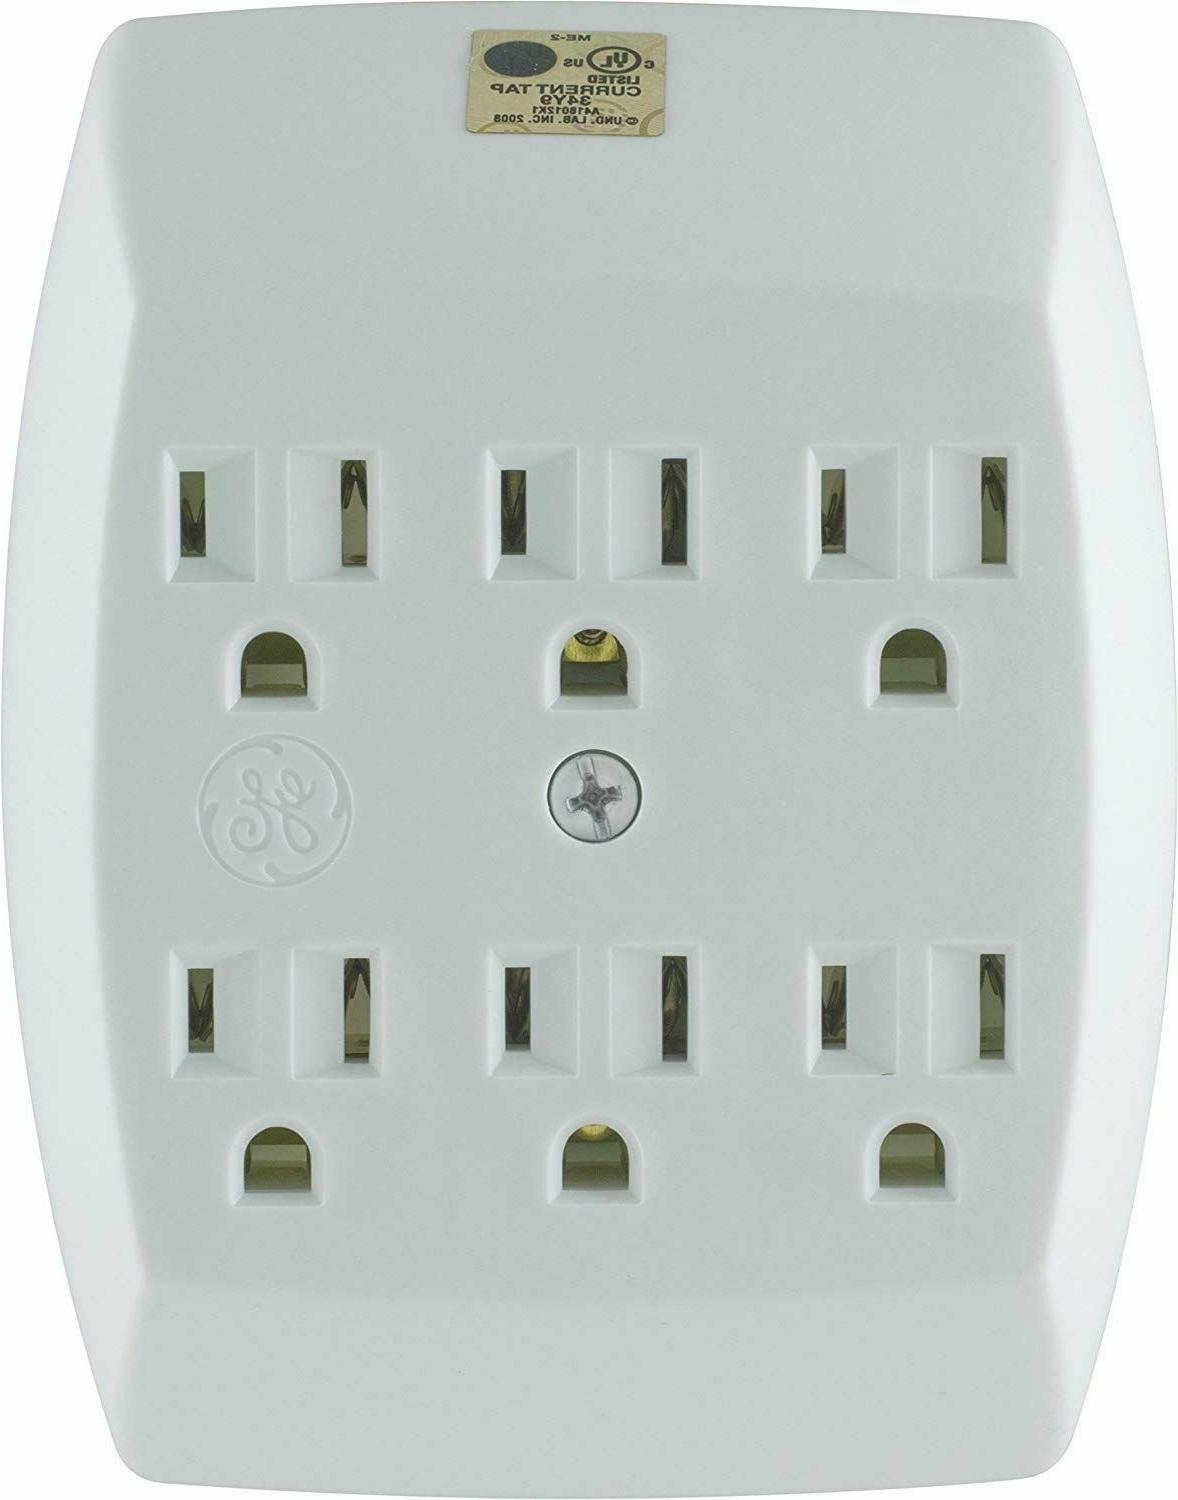 Outlet Cover Plate Plug Wall Tap Adapter 6 Socket Electrical